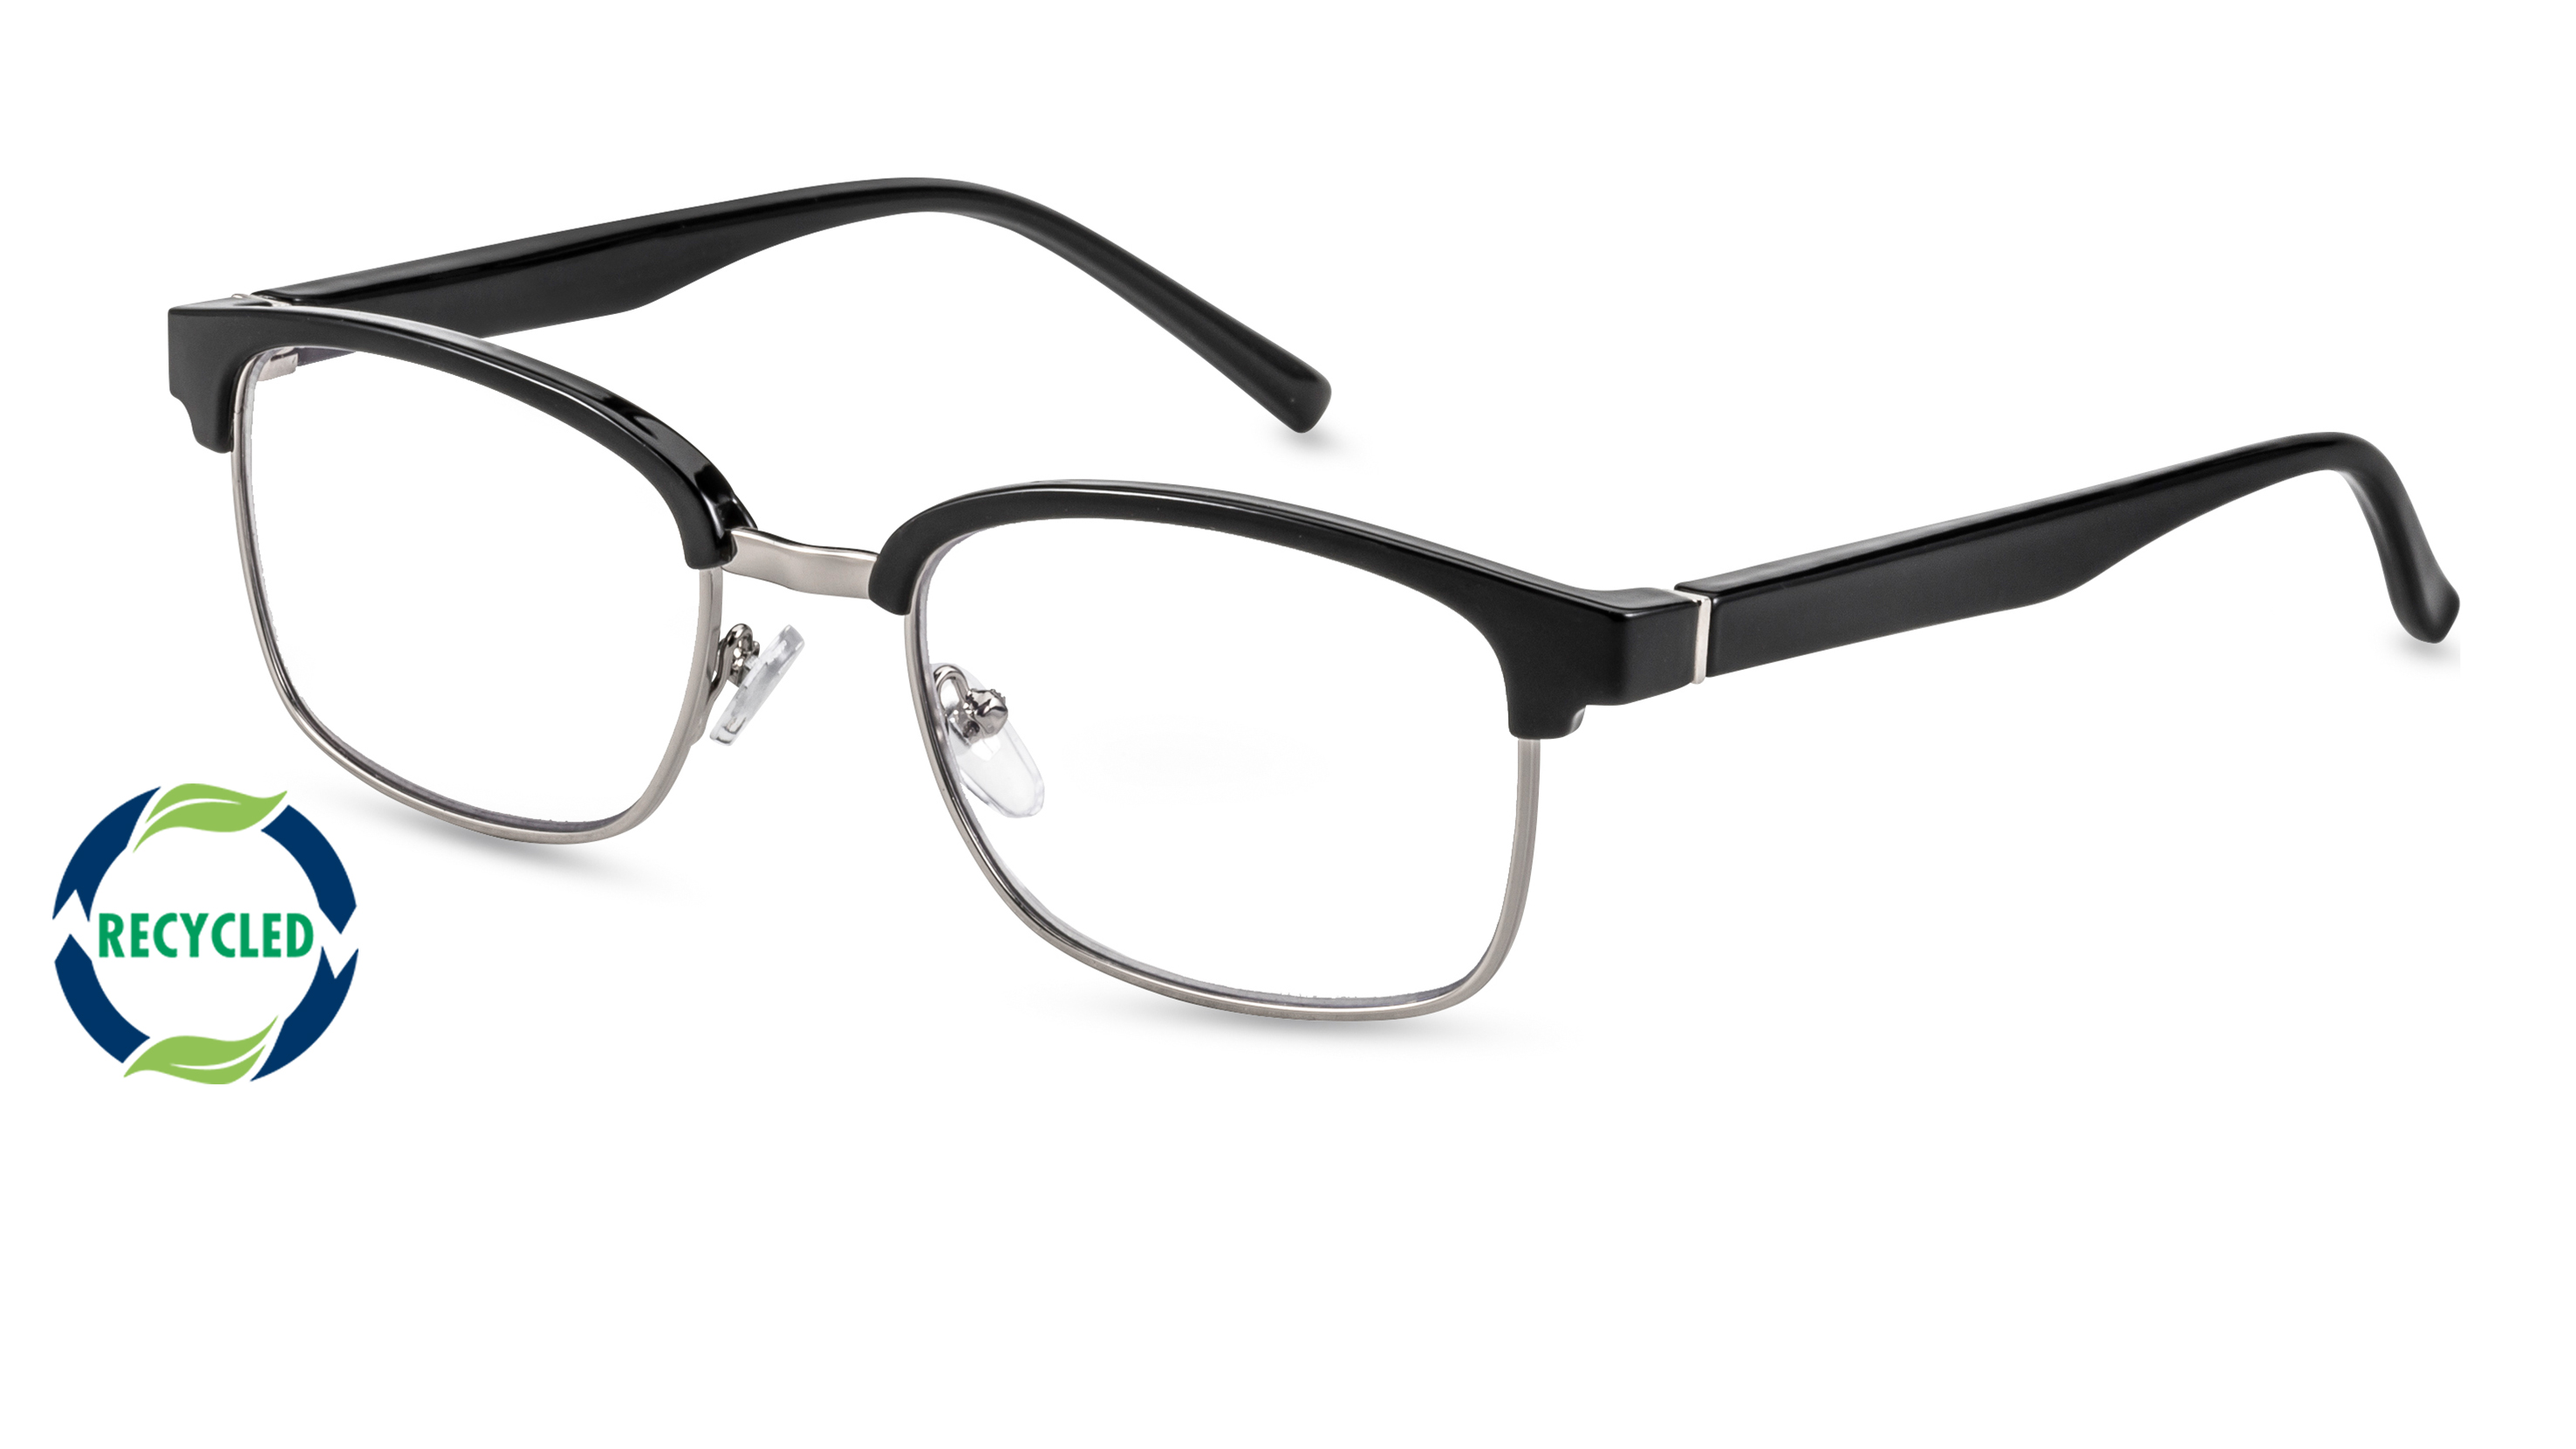 Filtral recycling reading glasses palermo black-silver